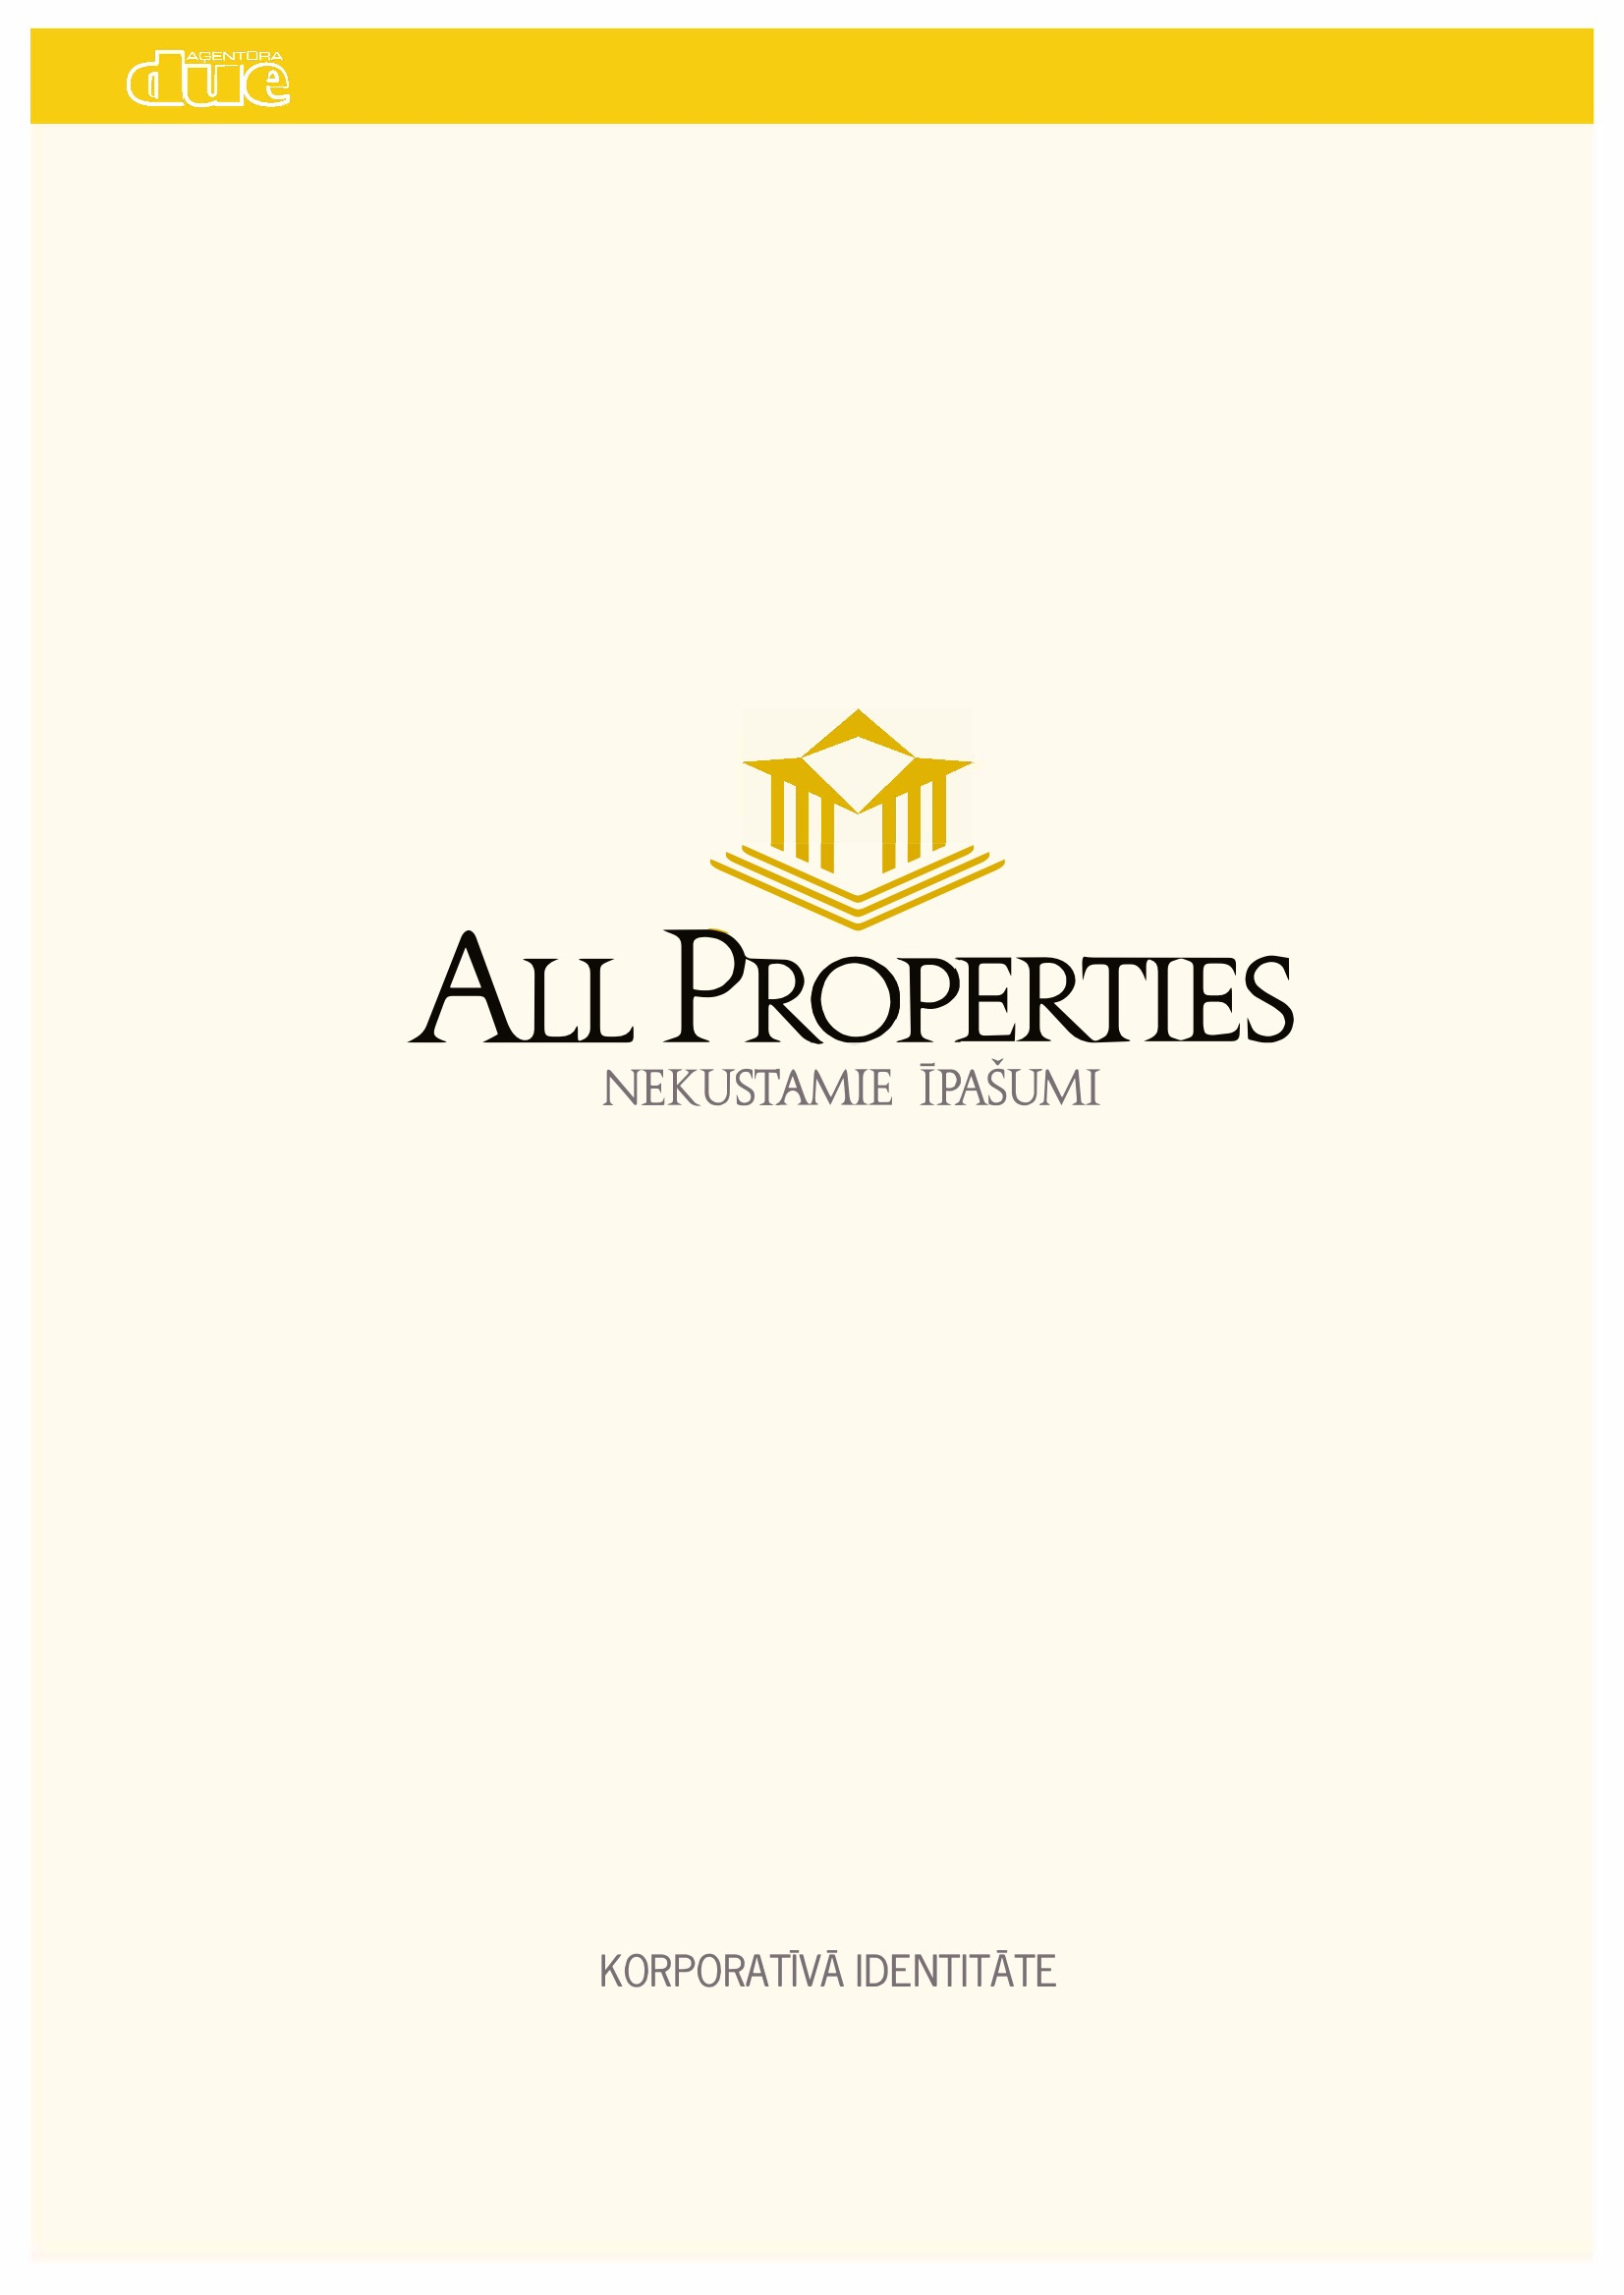 ALL_Properties_Stils 1